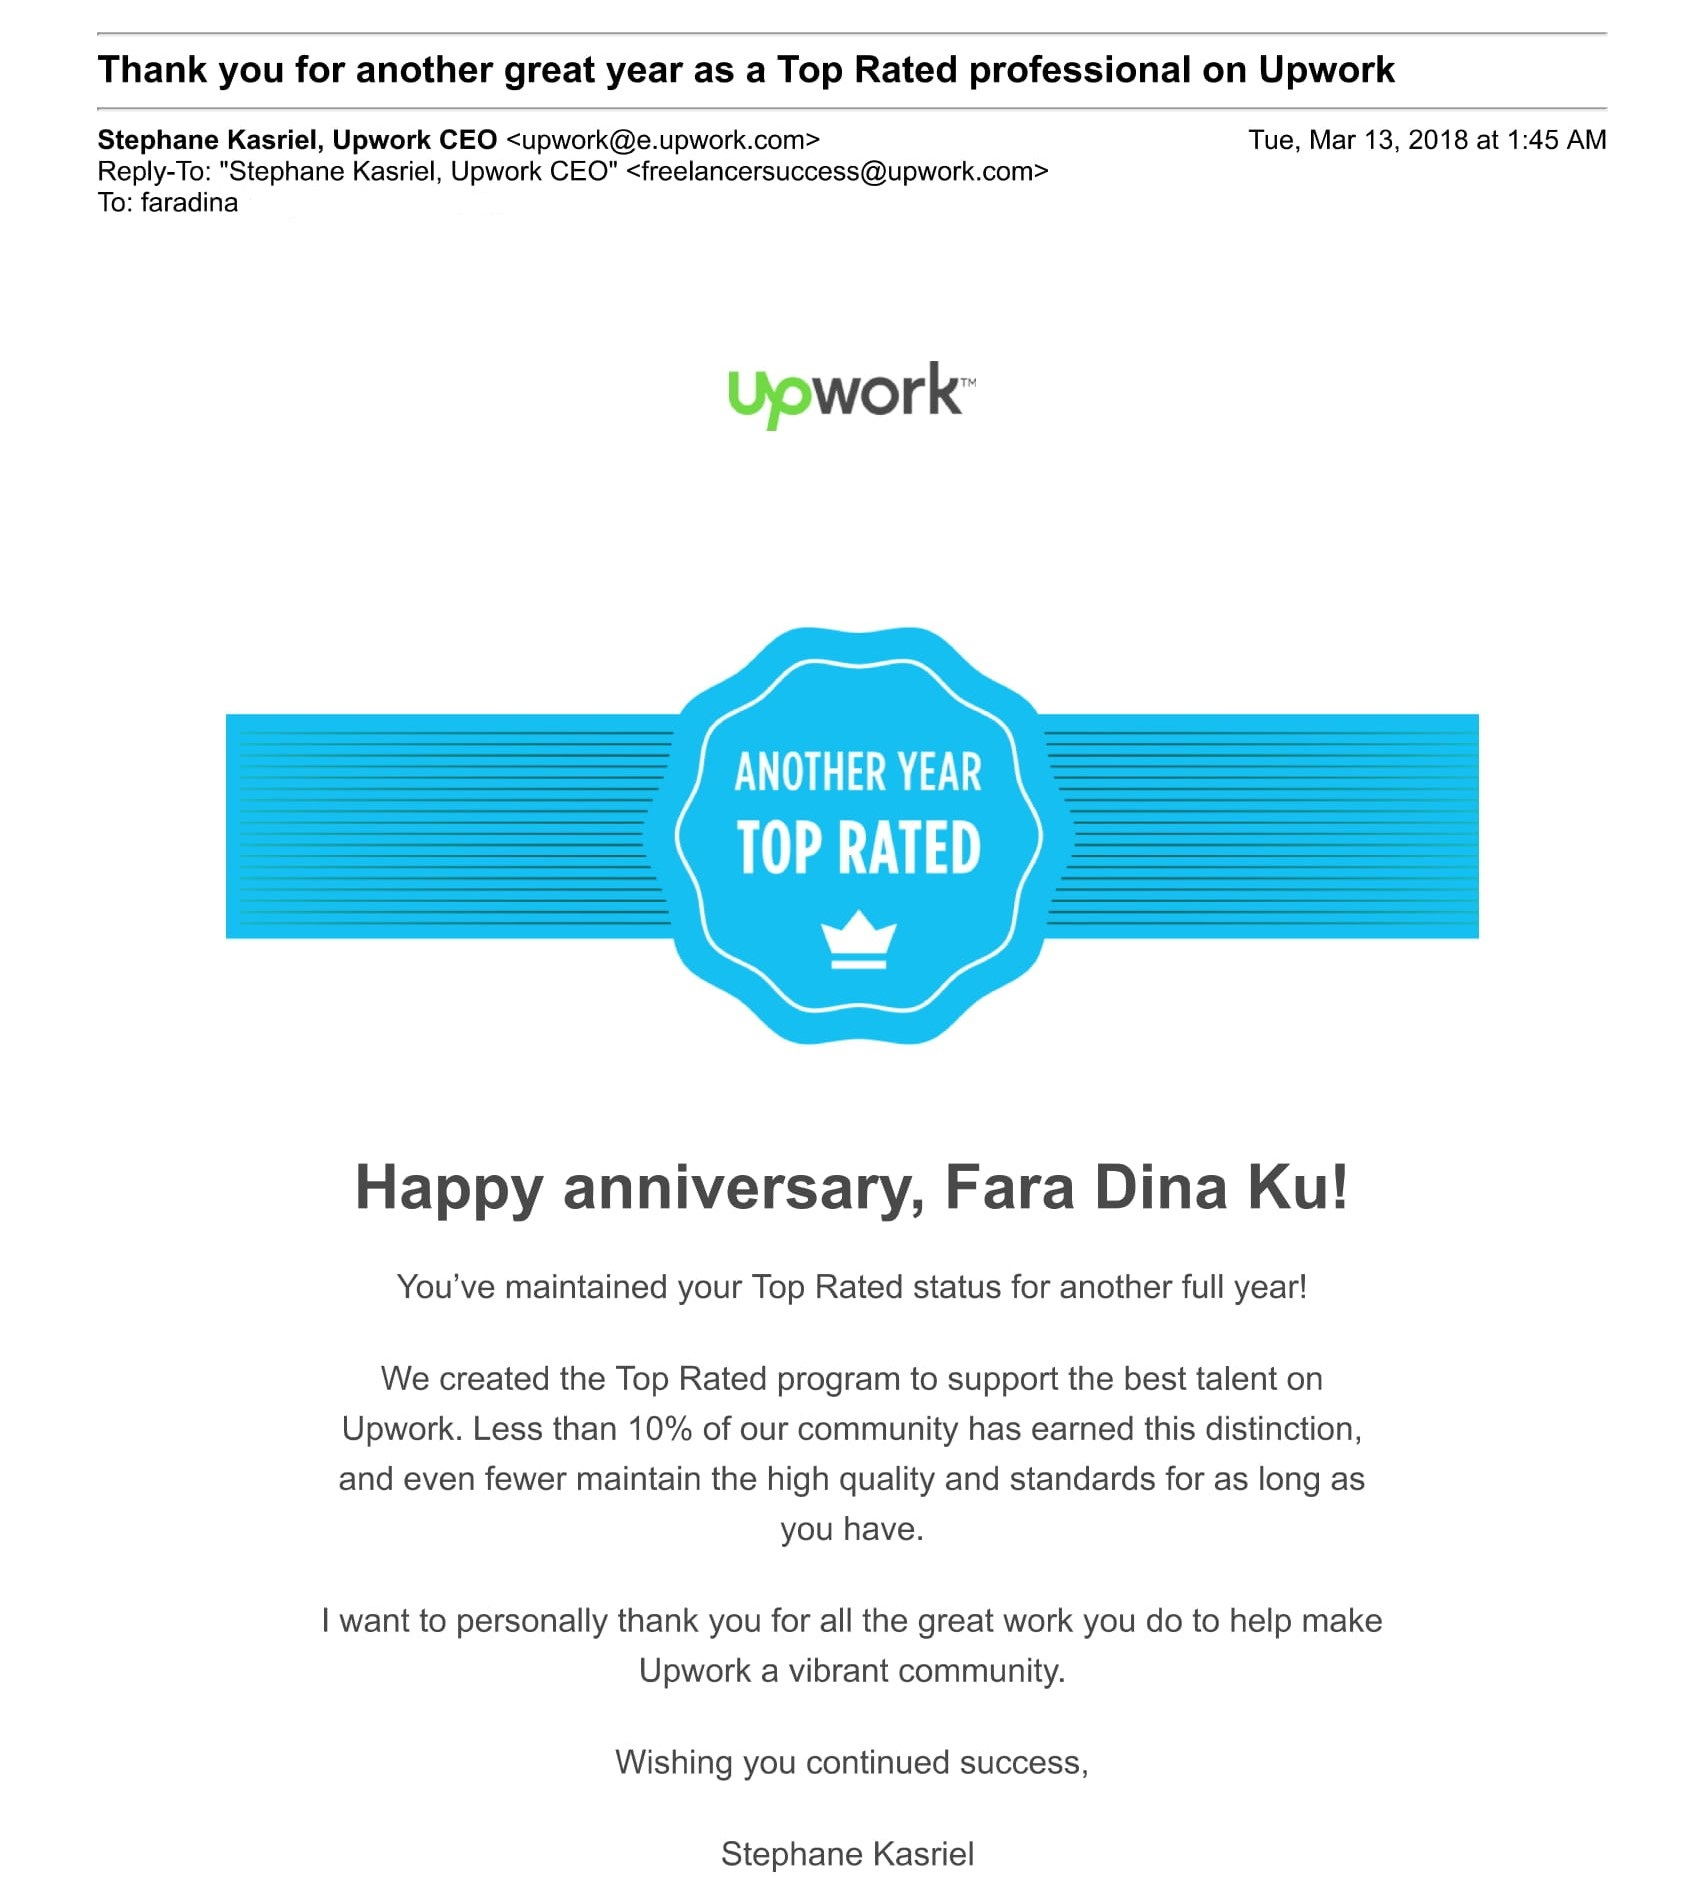 Happy anniversary, Fara Dina Ku! You've maintained your Top Rated status for another full year! We created the Top Rated program to support the best talent on Upwork. Less than 10% of our community has earned this distinction, and even fewer maintain the high quality and standards for as long as you have. I want to personally thank you for all the great work you do to help make Upwork a vibrant community. Wishing you continued success, Stephane Kasriel  CEO, Upwork